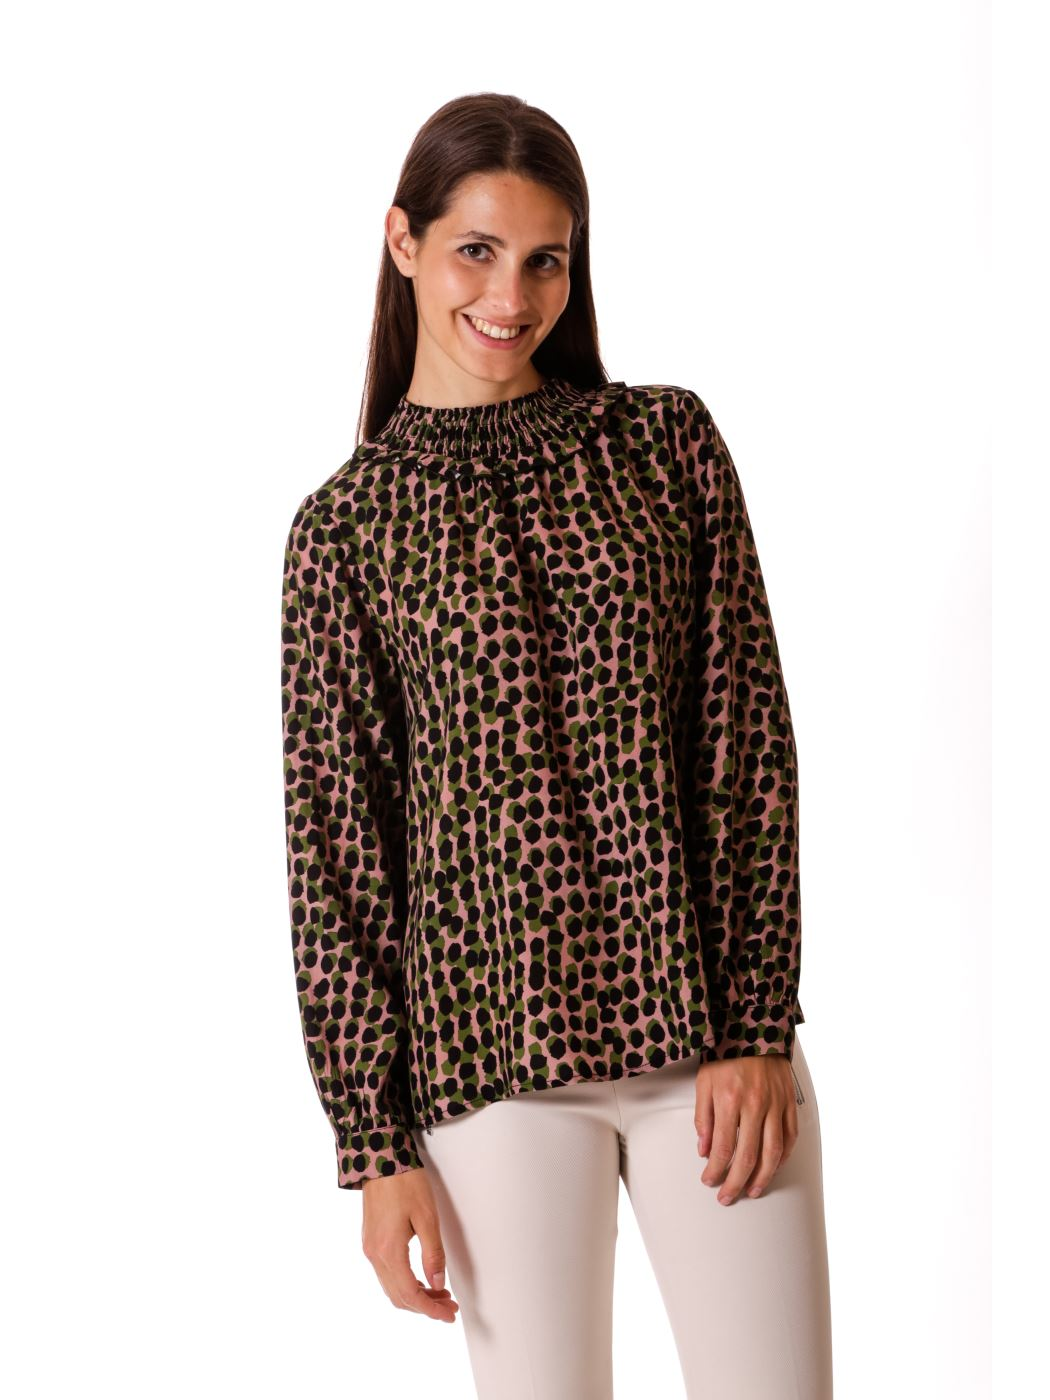 Blusa over stampa pois